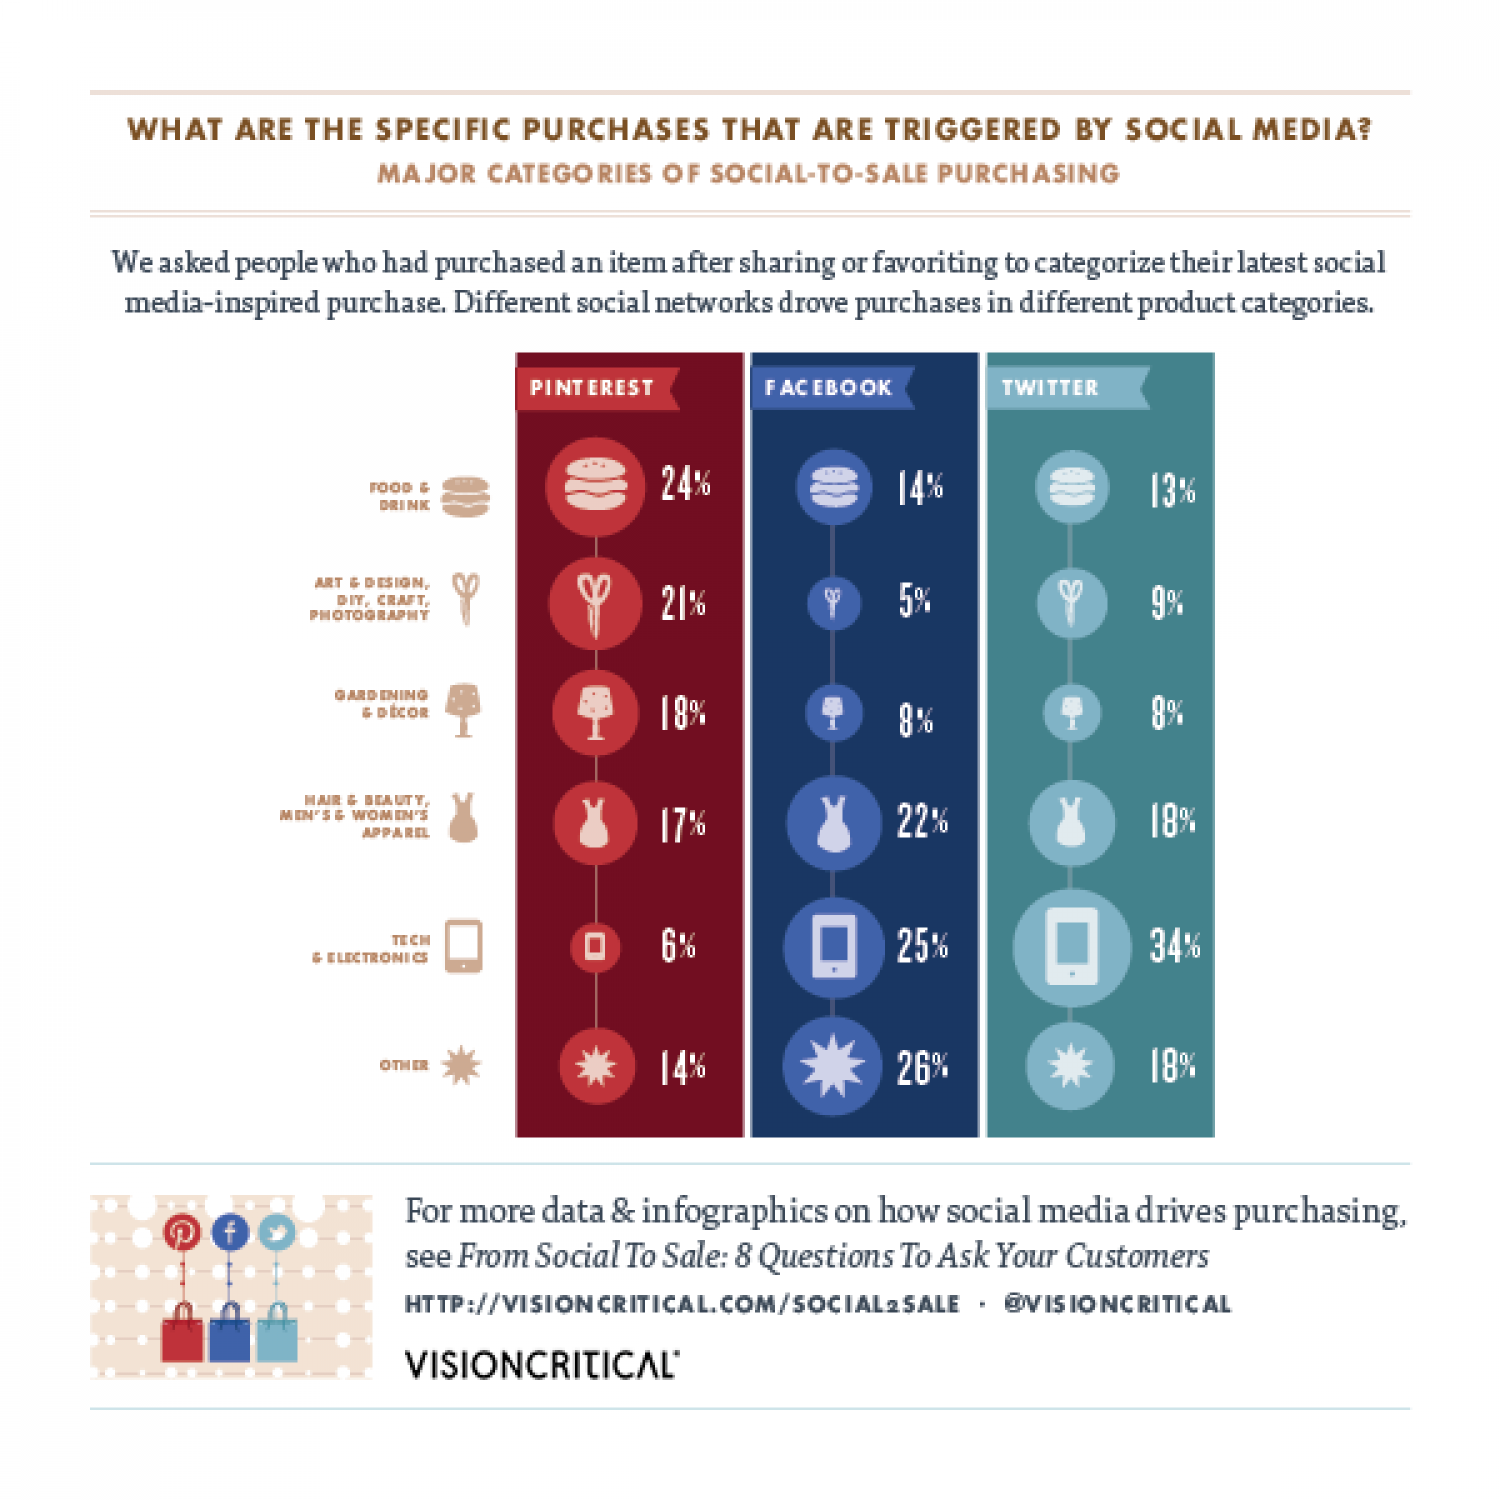 From Social to Sale: What are the Specific Purchases Triggered by Social Media?  Infographic